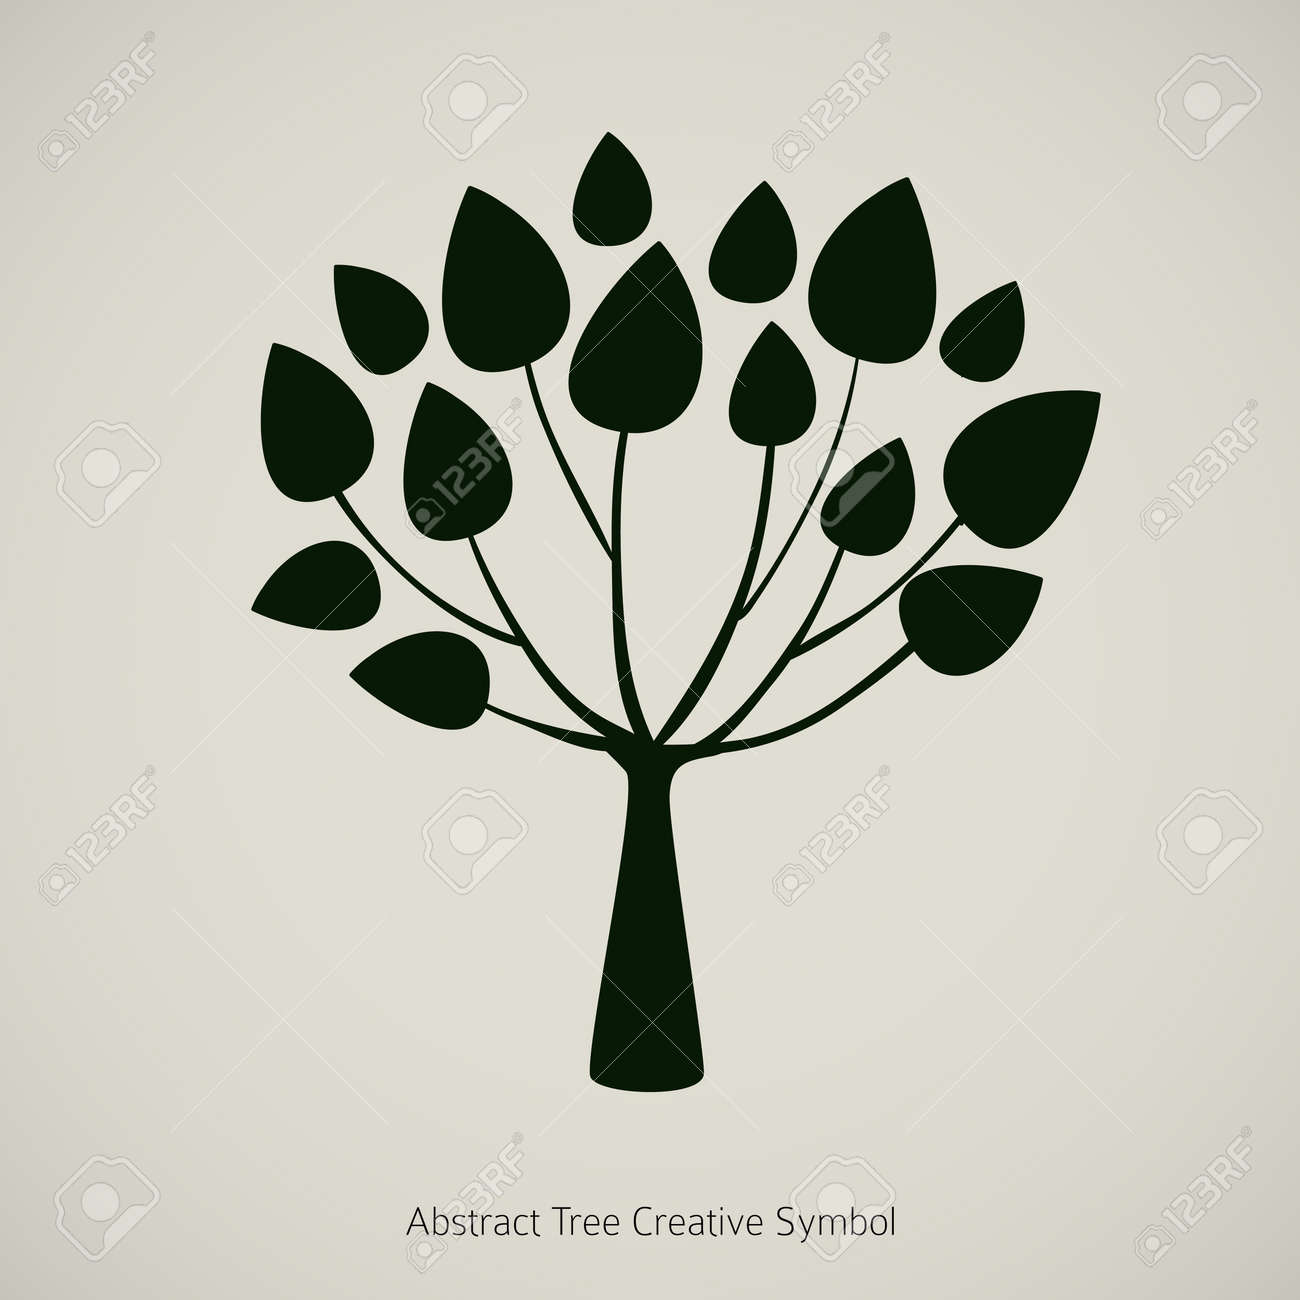 Tree plant illustration. Nature abstract design symbol Stock Vector - 14274175